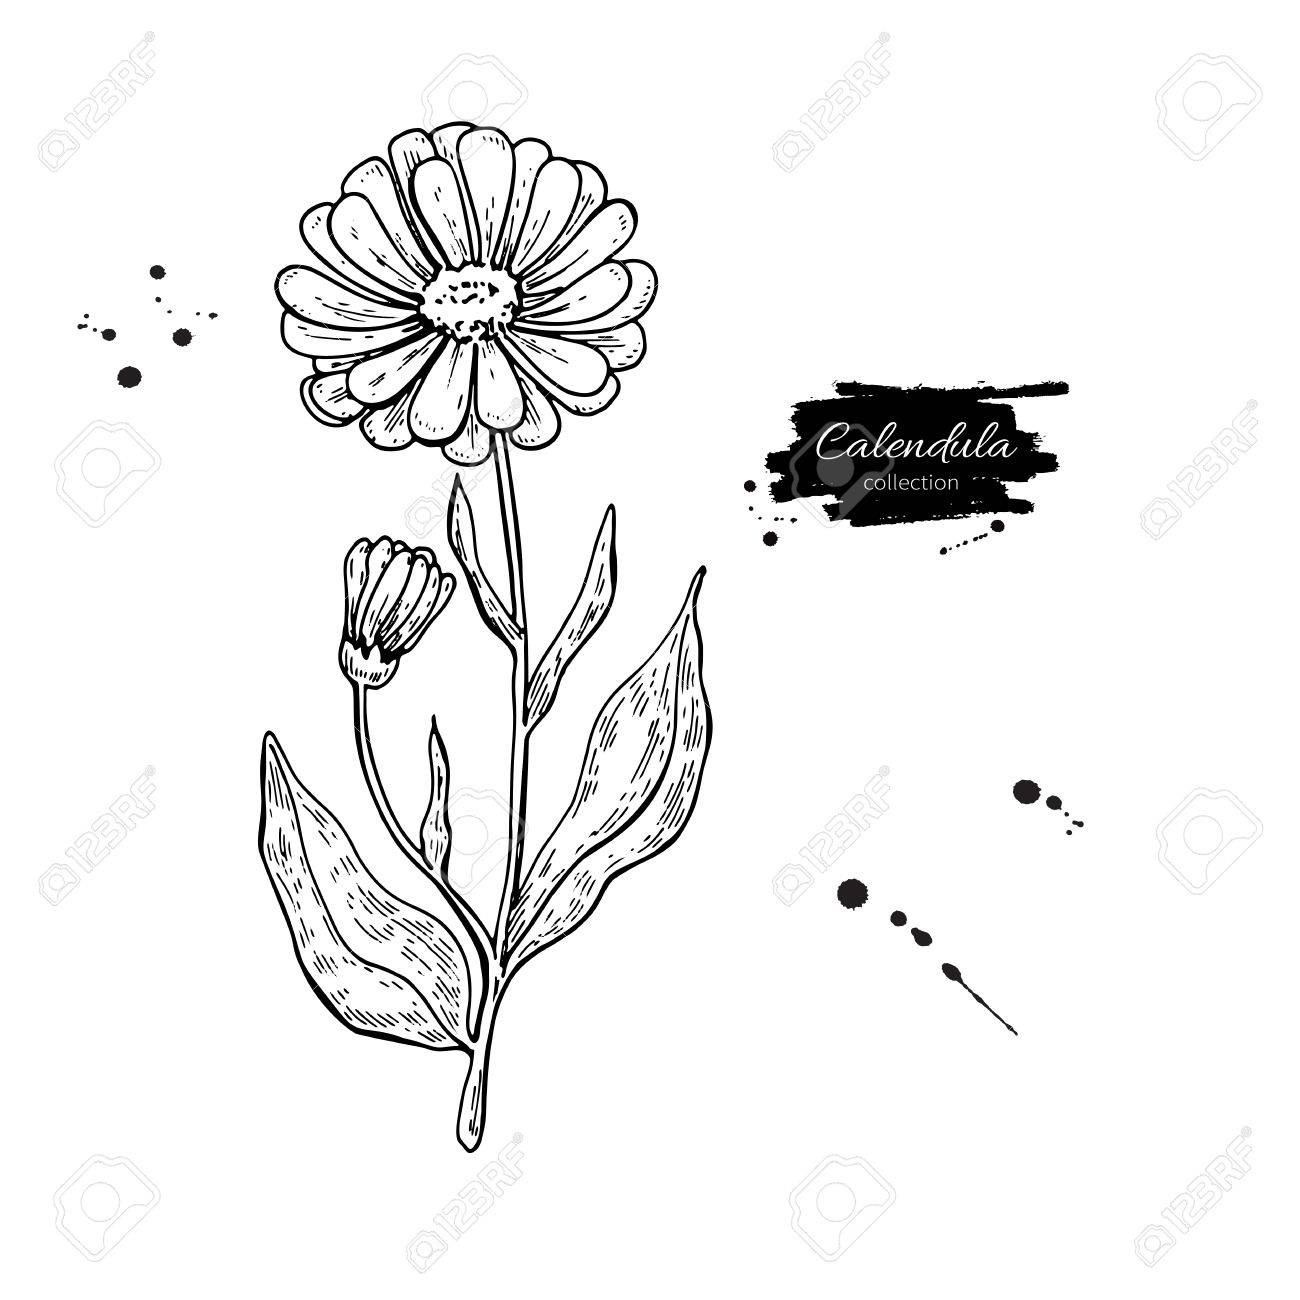 1300x1300 Calendula Vector Drawing. Isolated Medical Flower And Leaves